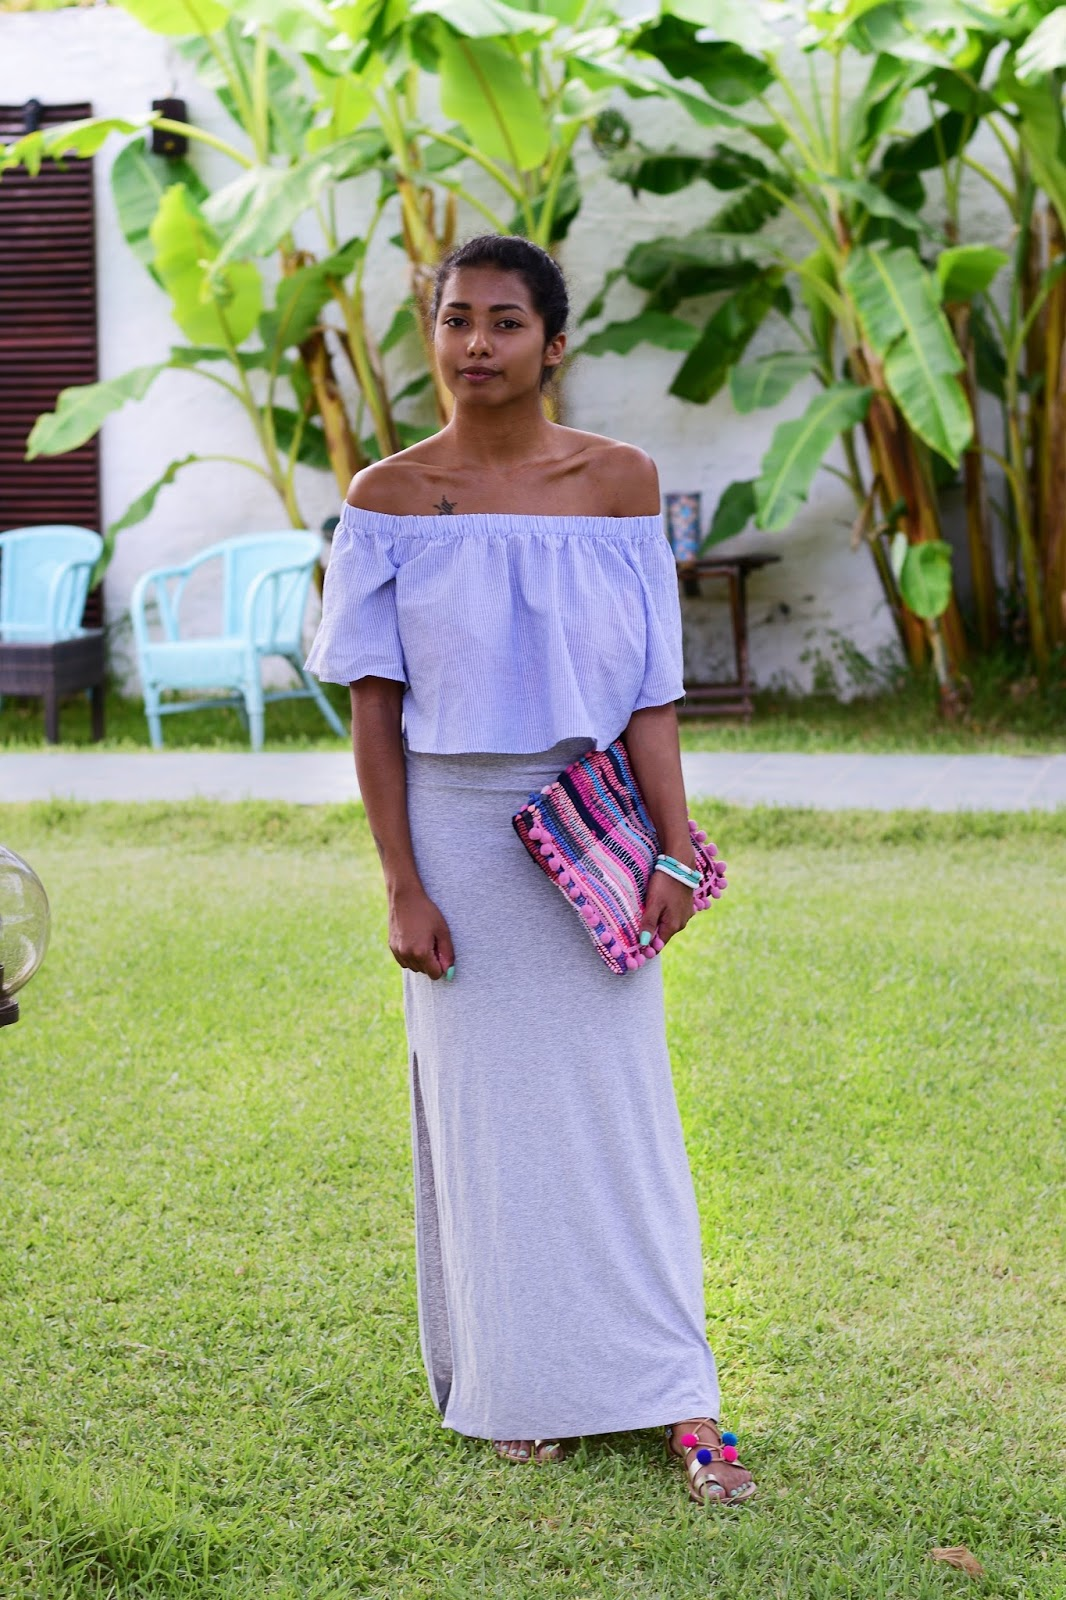 a casual way to style off shoulder tops with maxi skirts in summer